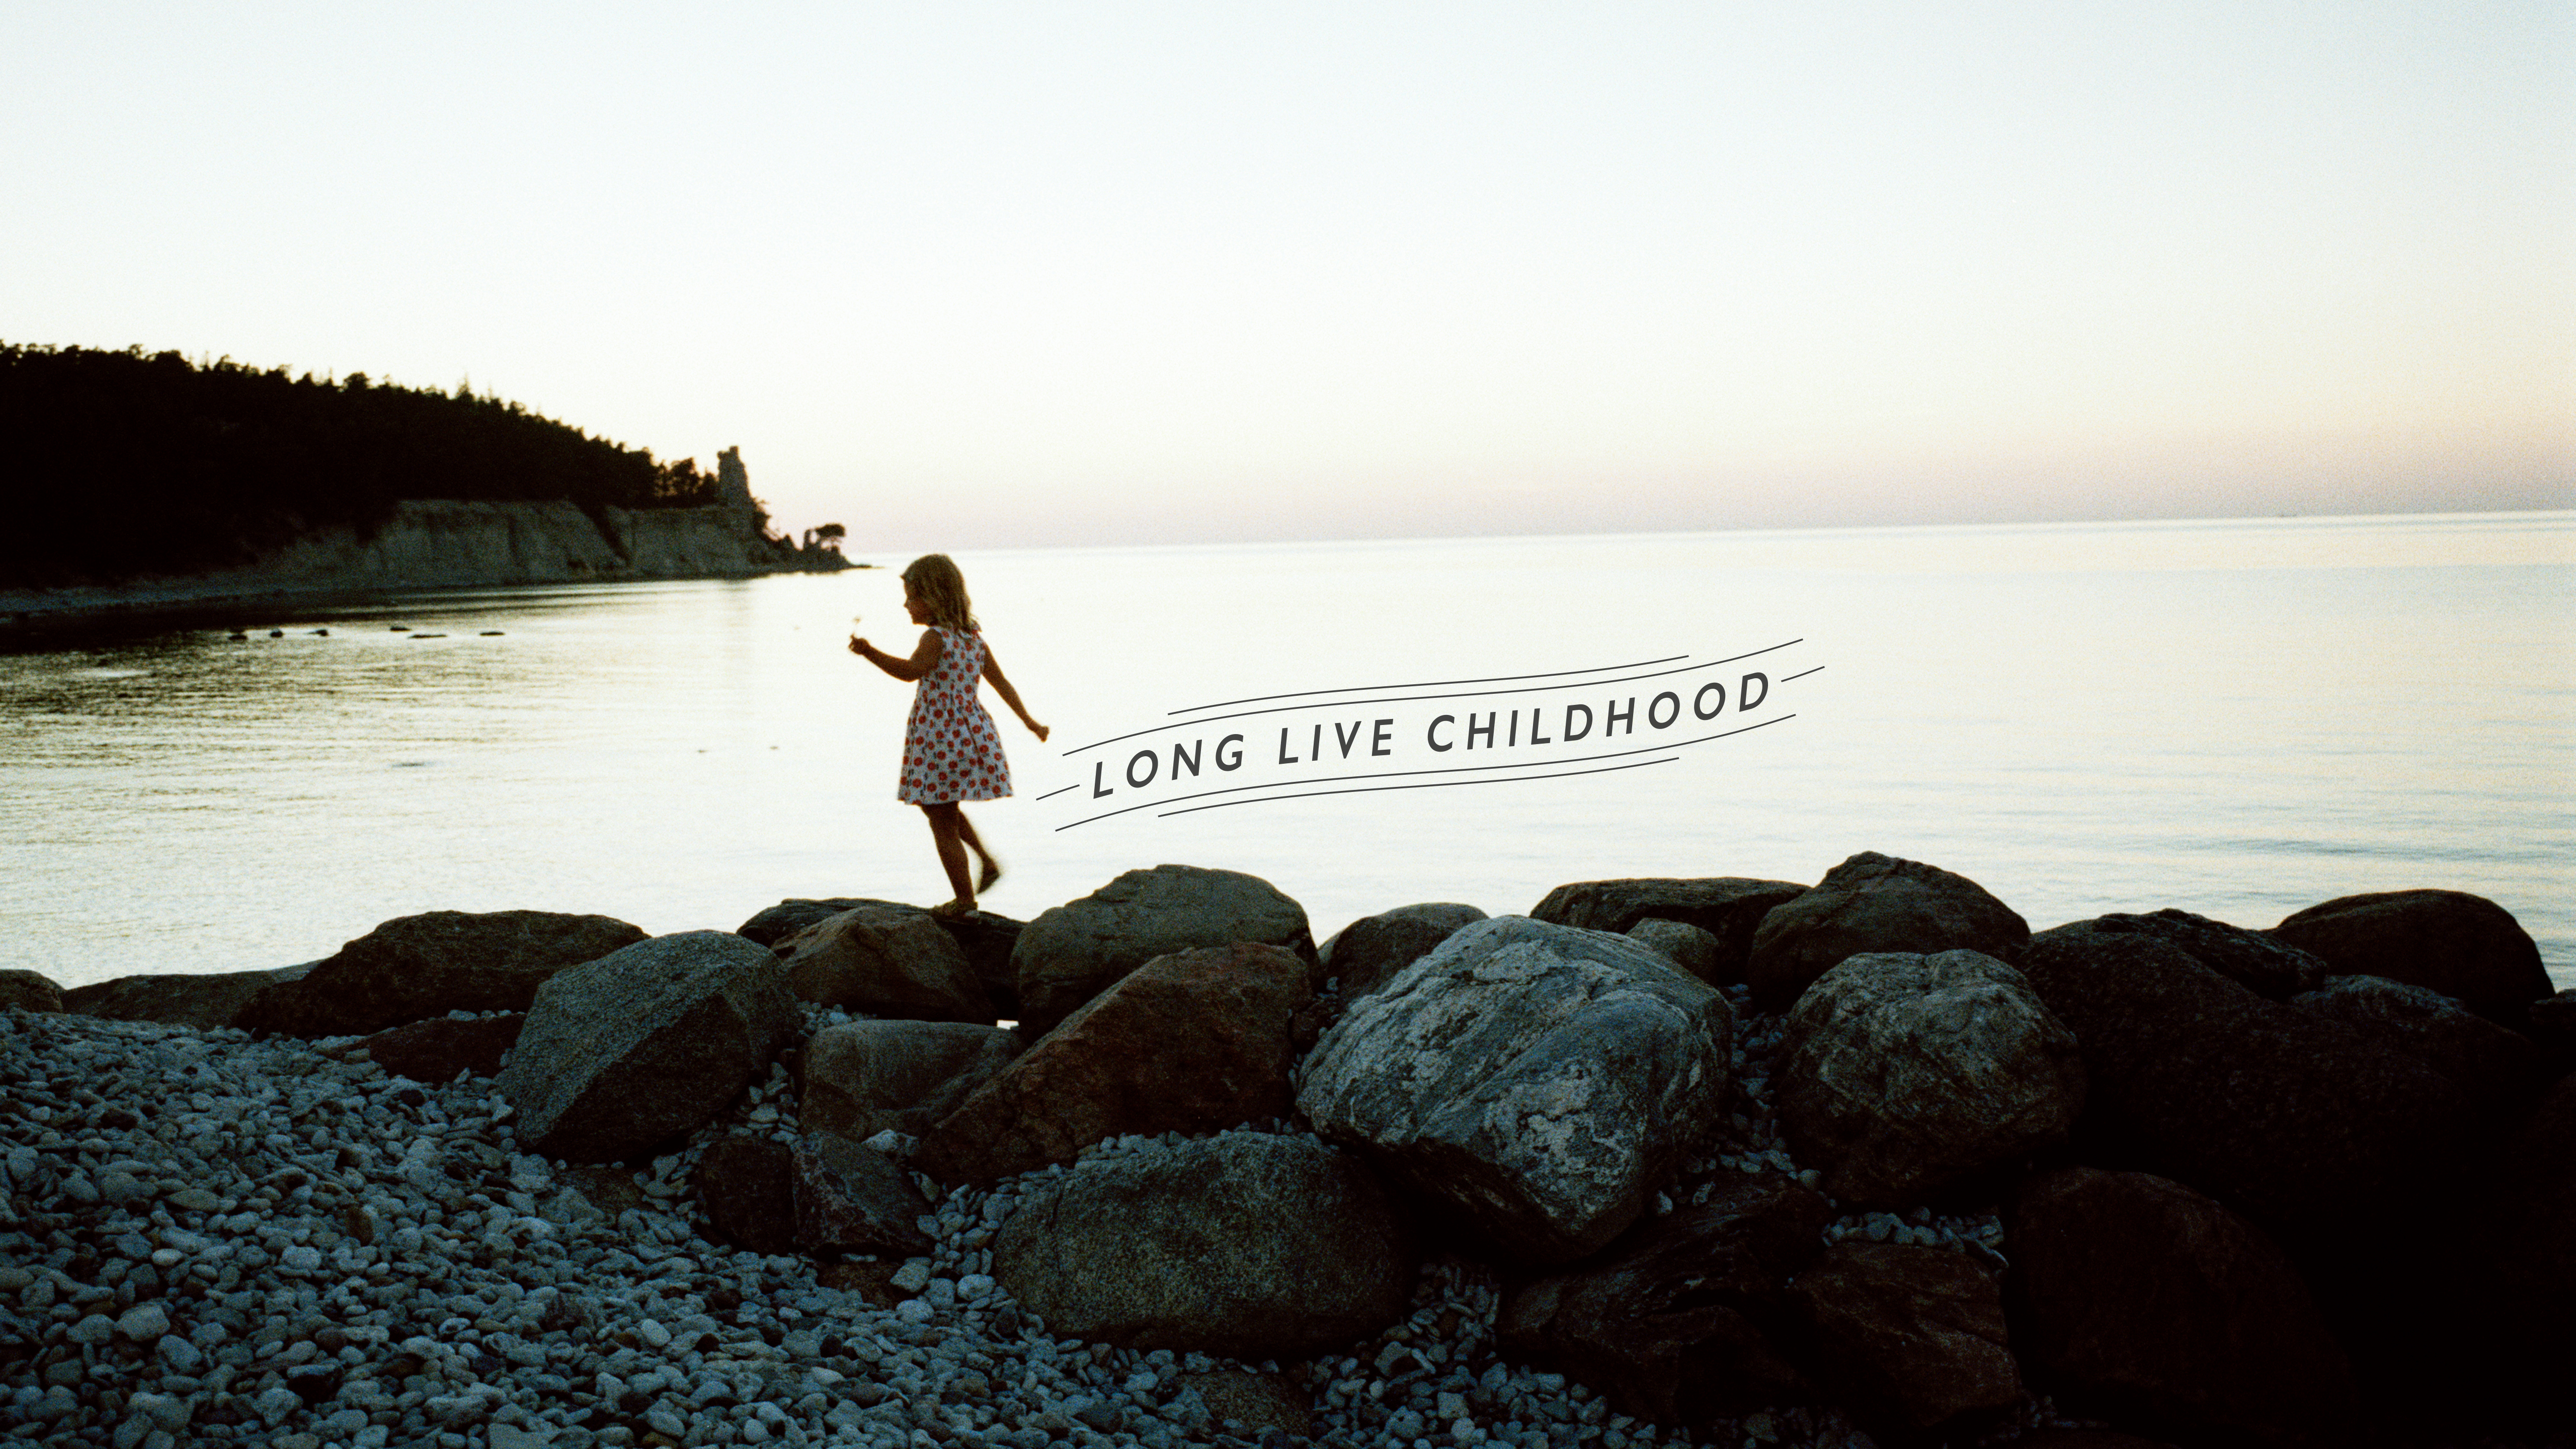 Girl on the rocks at the shore - Long Live Childhood